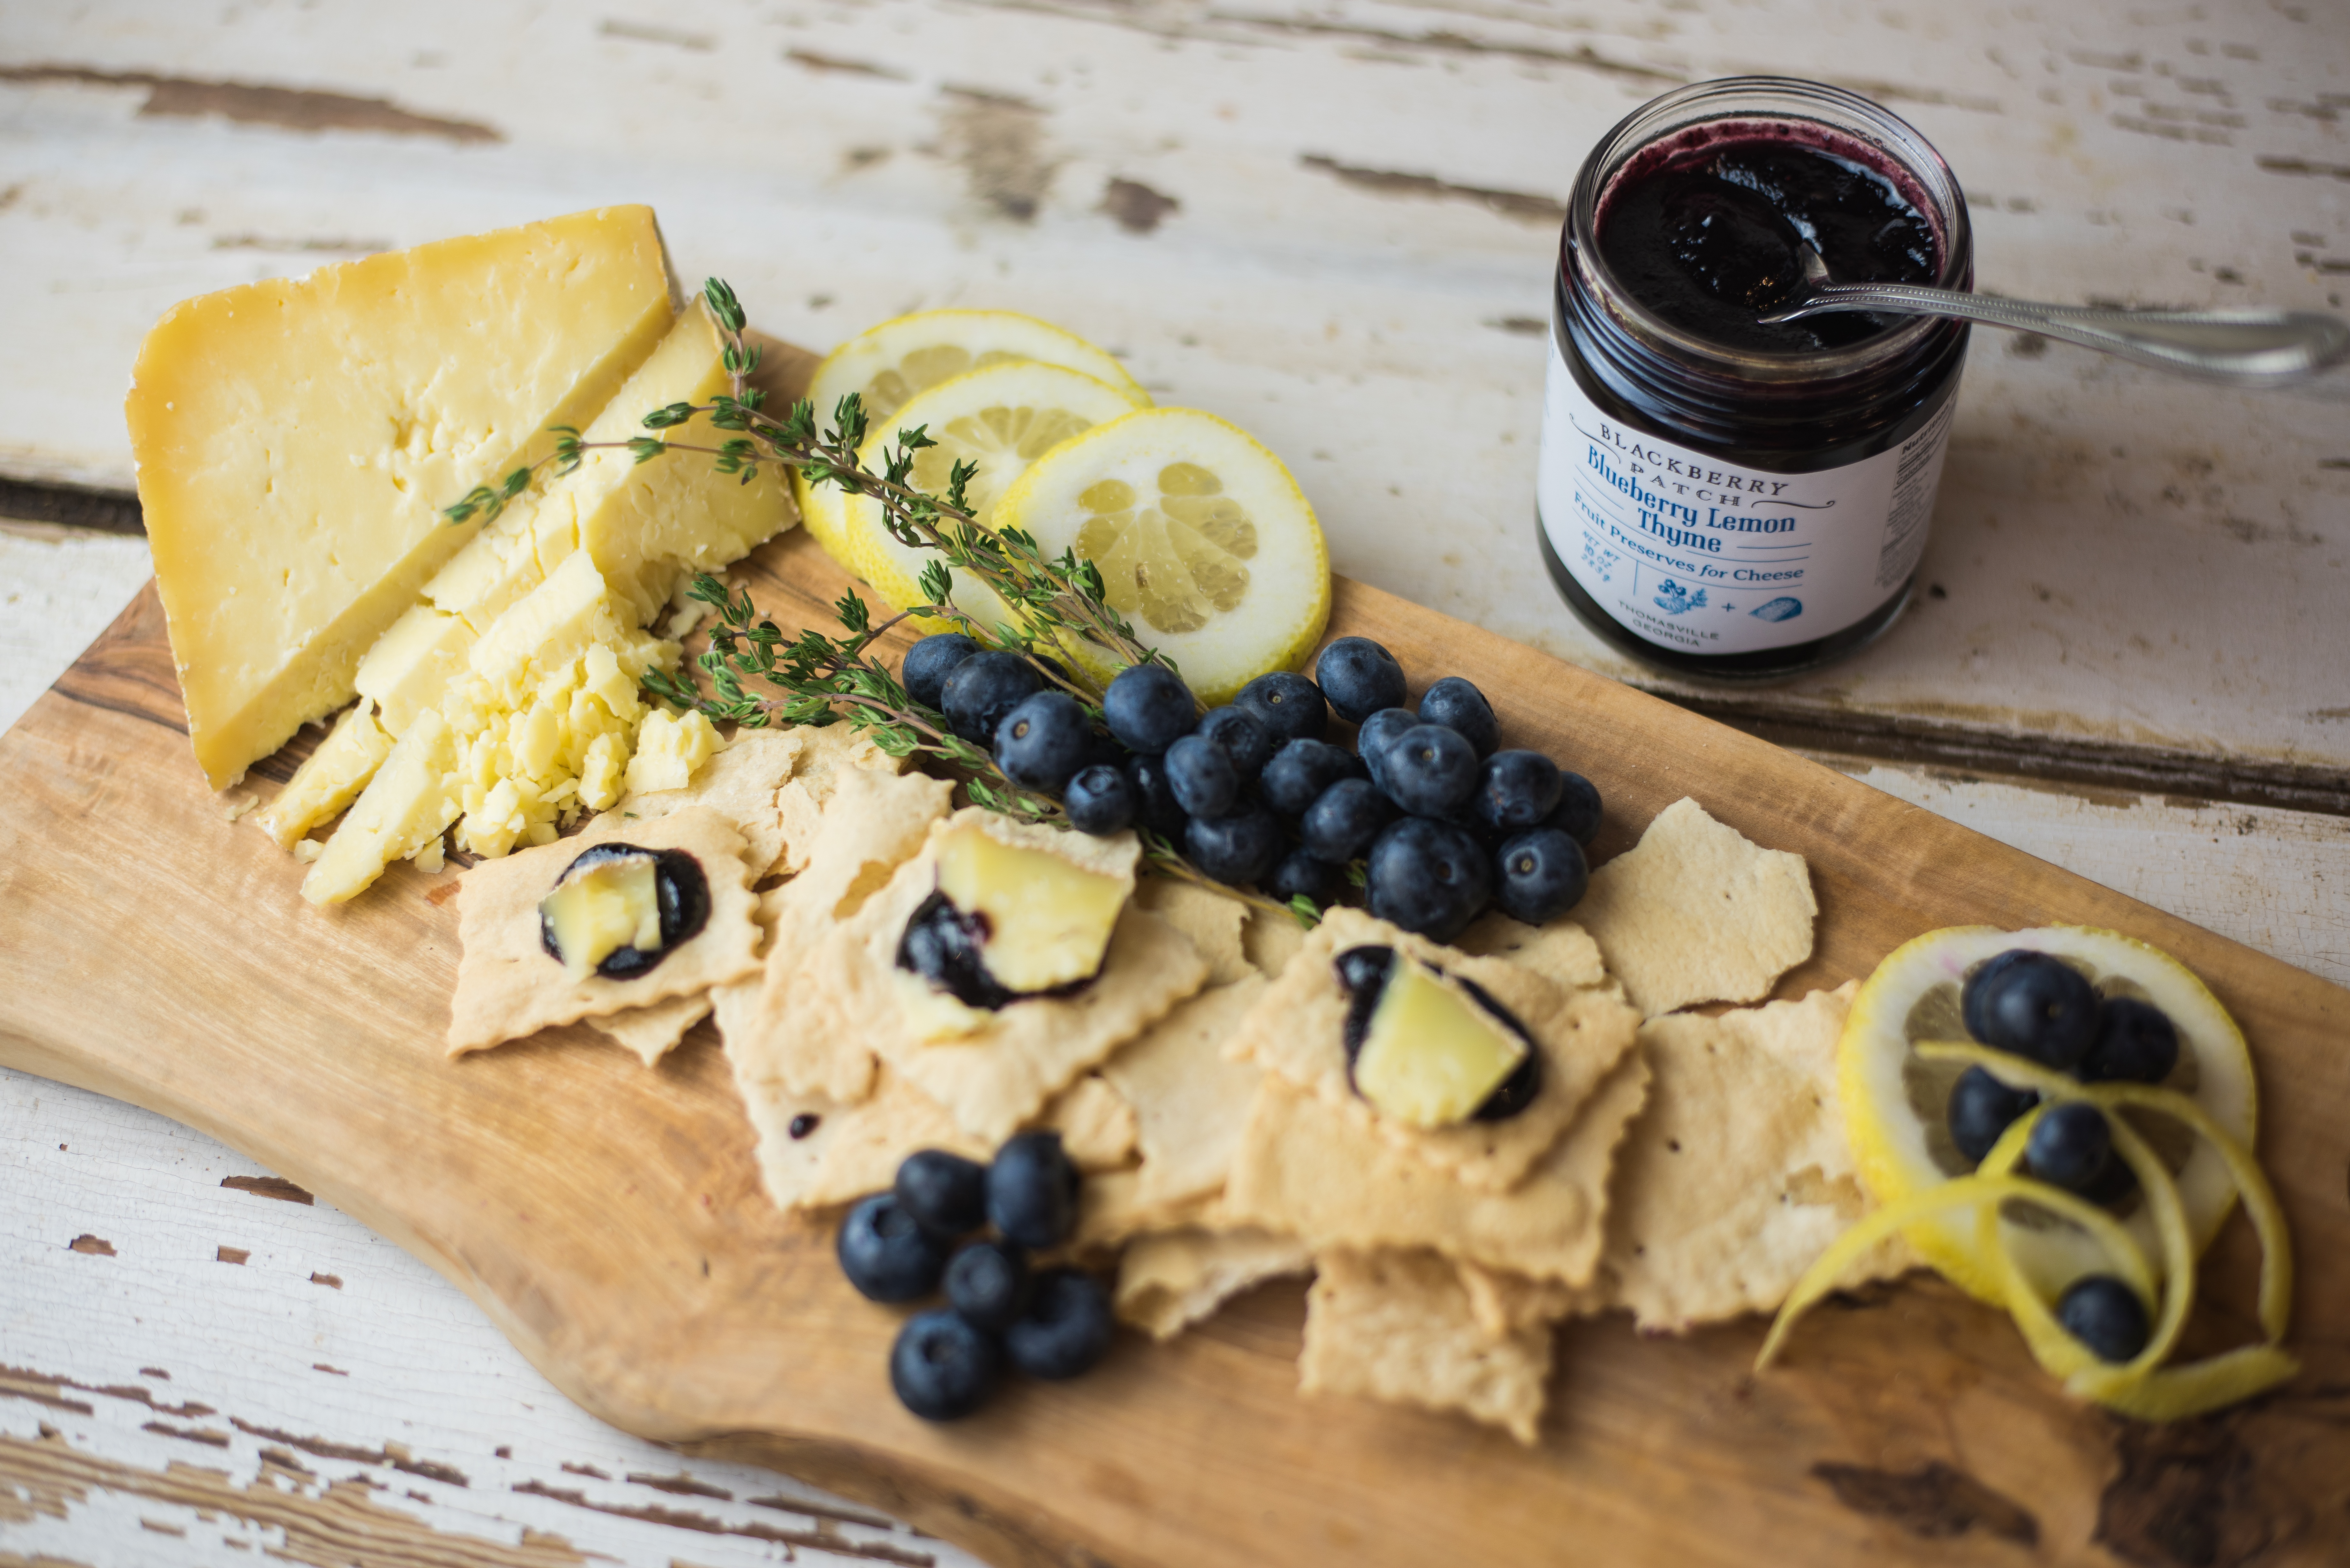 Blackberry Patch blueberry lemon is great with cheese and wine